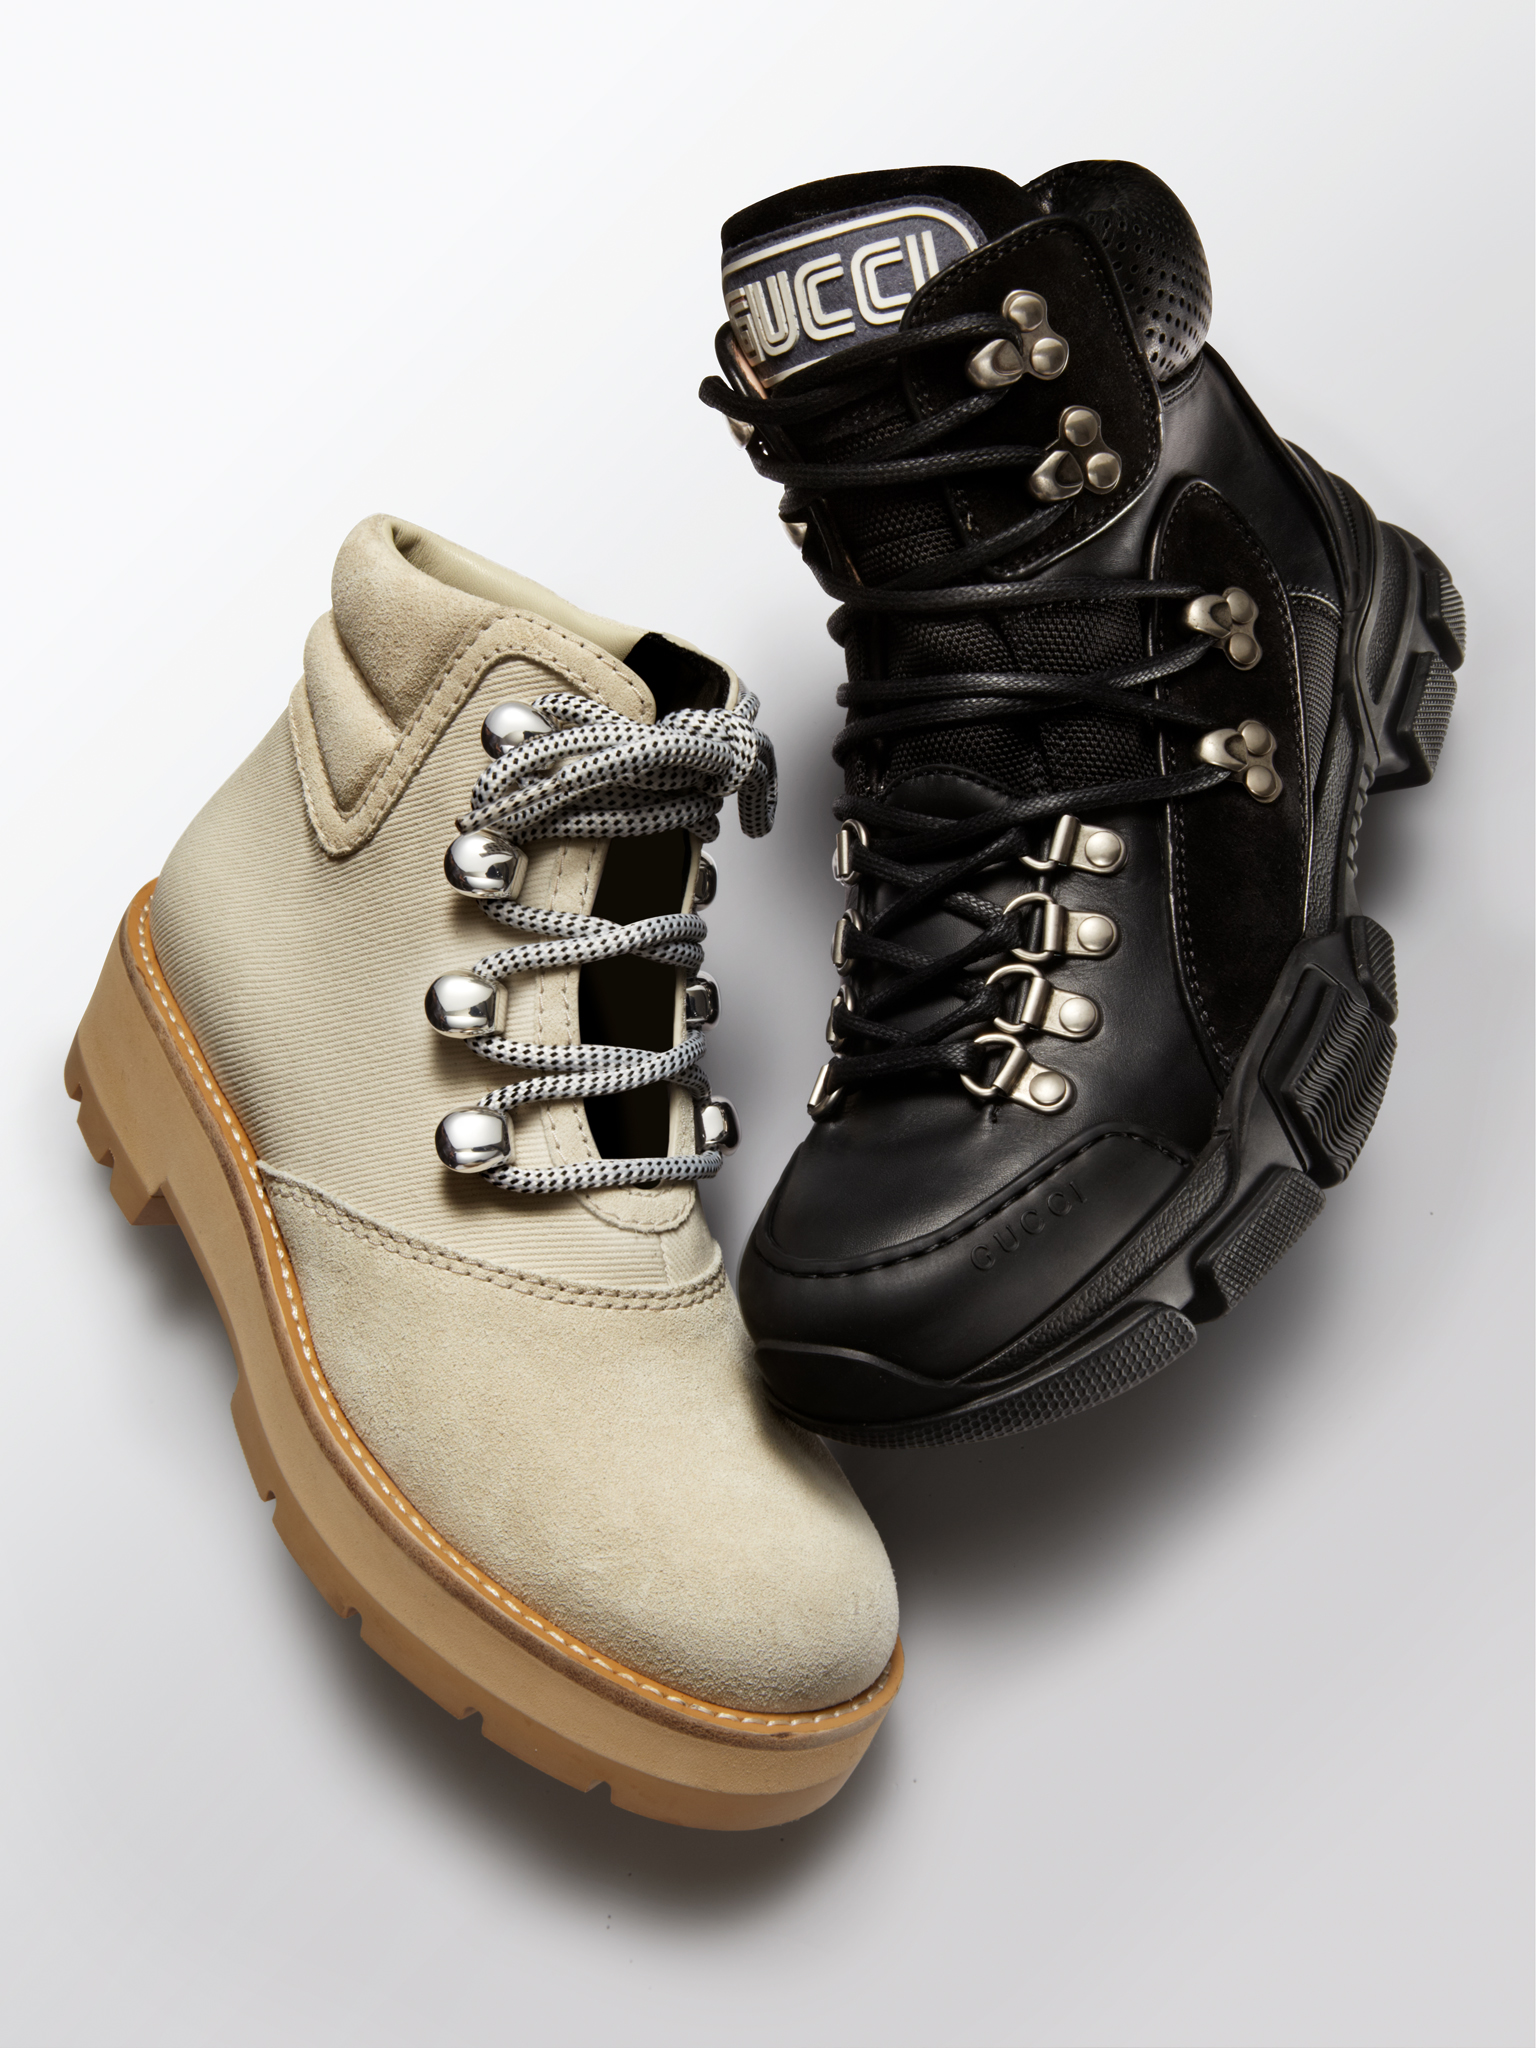 bd072290dd6 Hiking Boots  The Oh-So-Wearable Footwear Trend The Fashion Desk Love